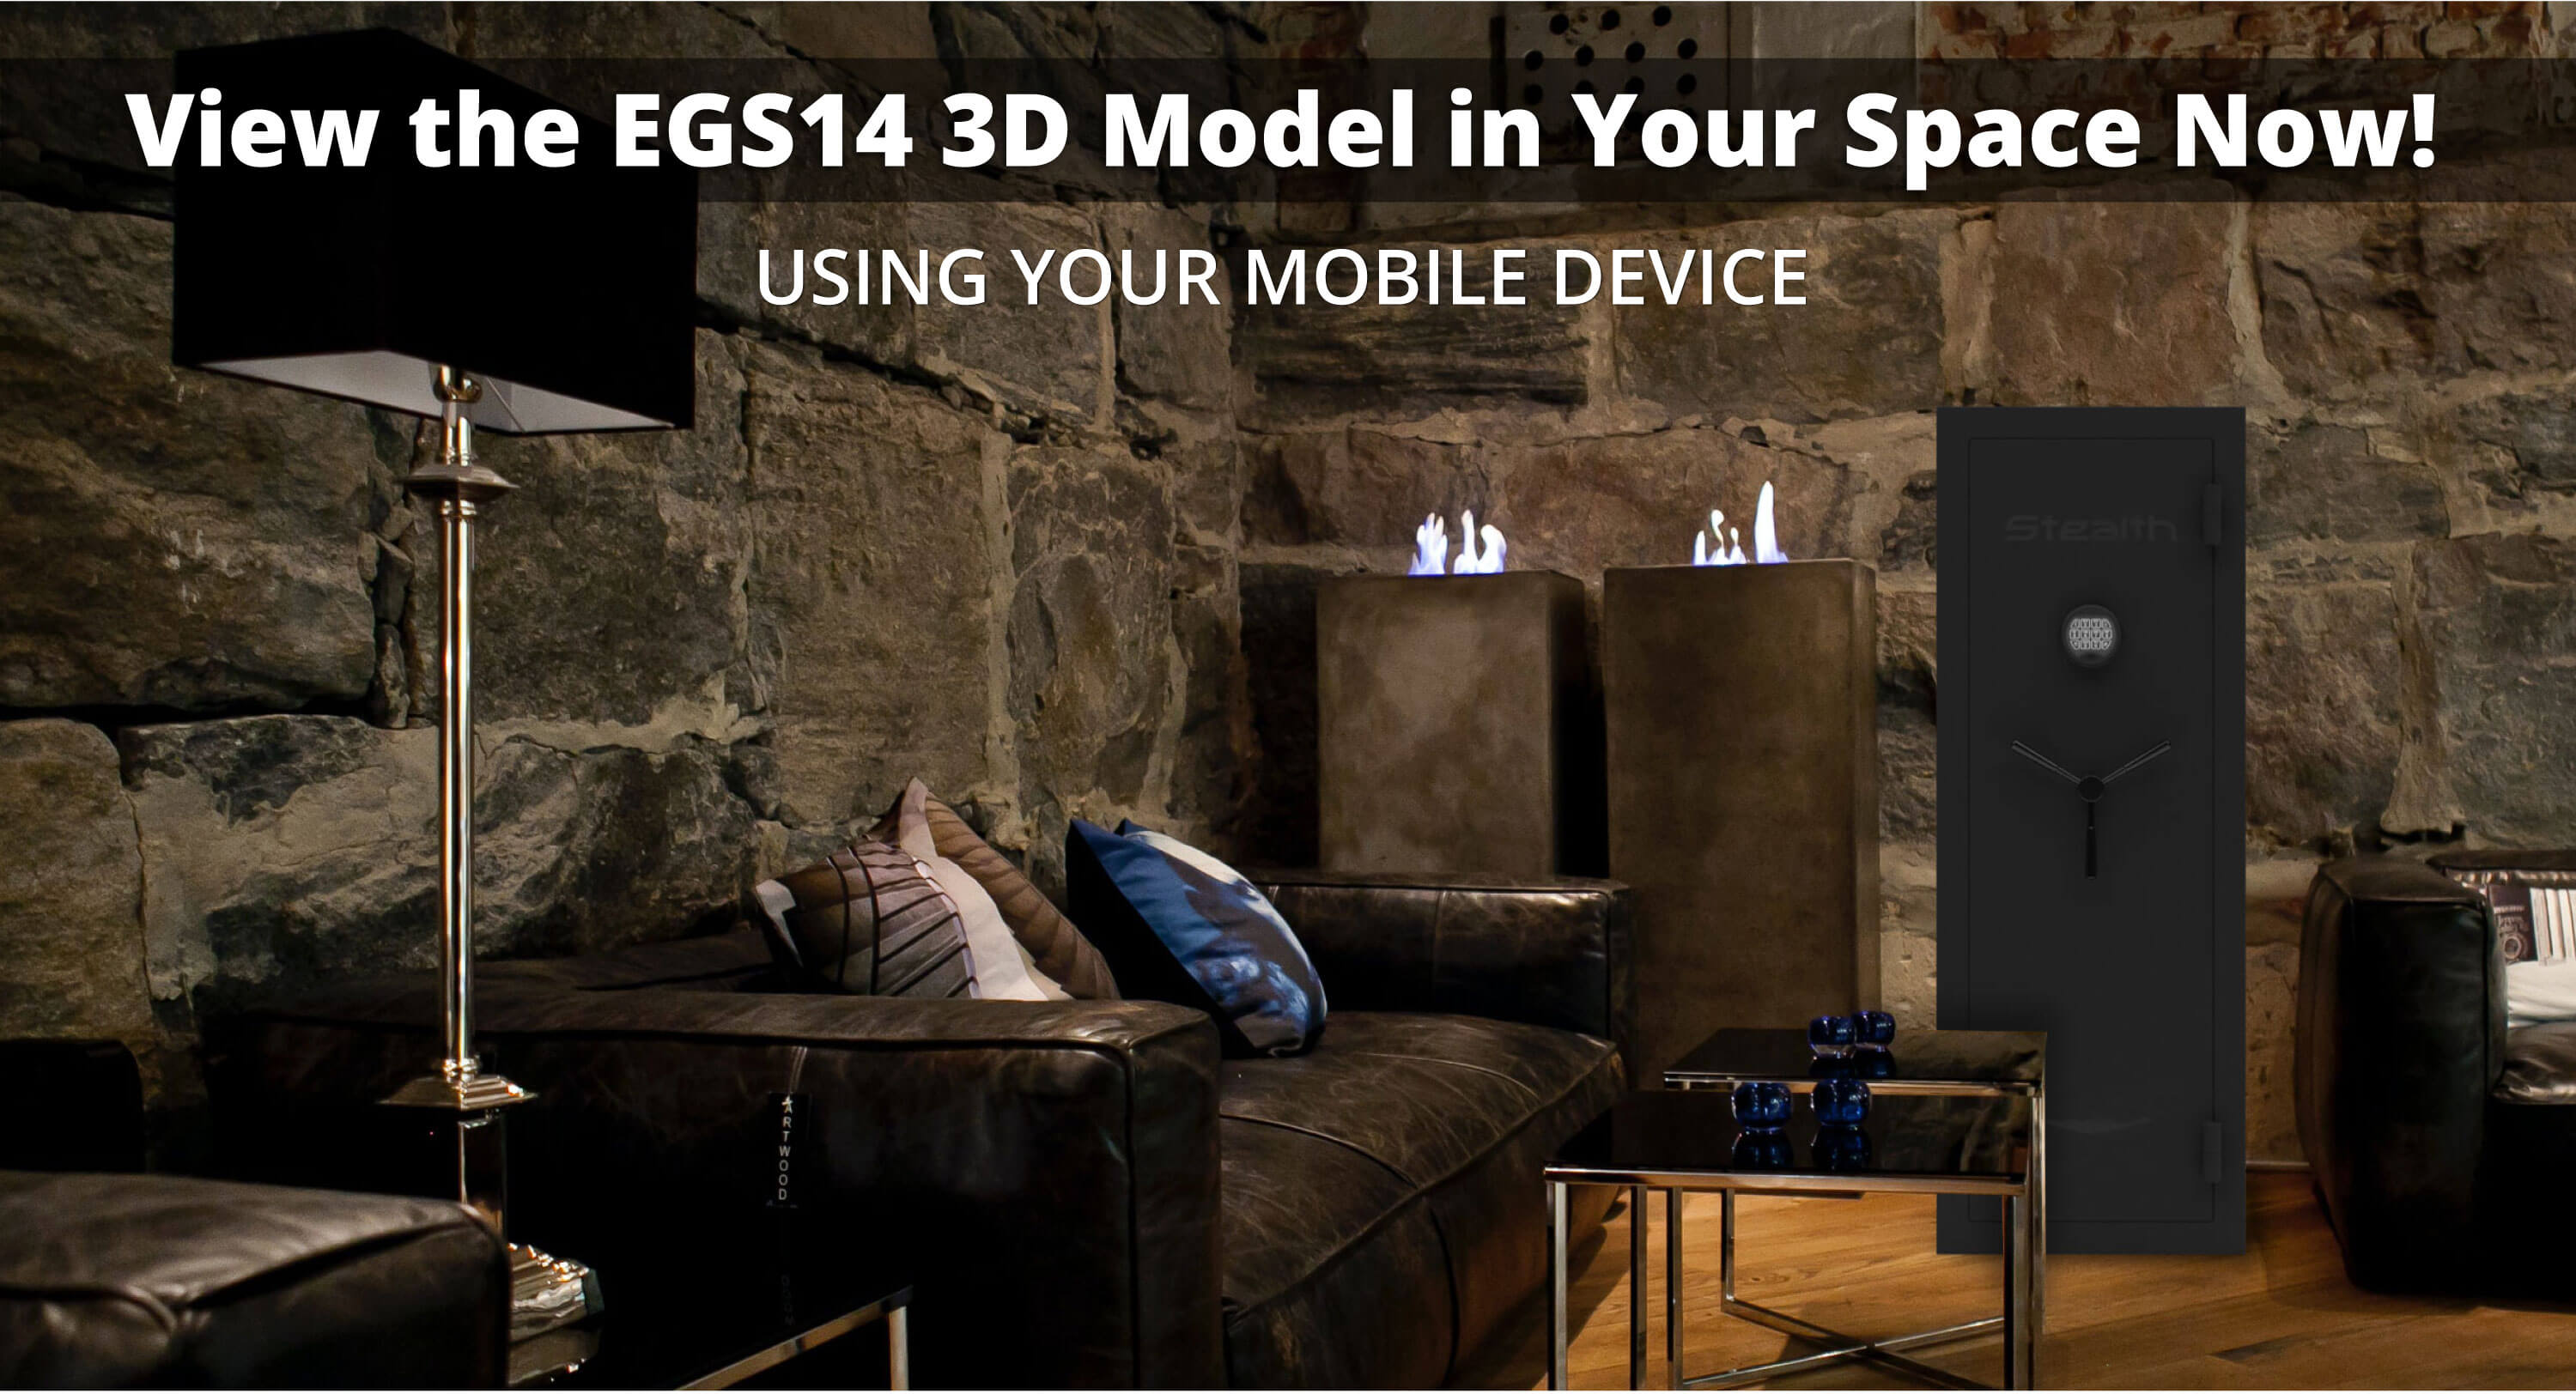 Stealth EGS14 Economy Gun Safe 3D Model and Augmented Reality Experience Available